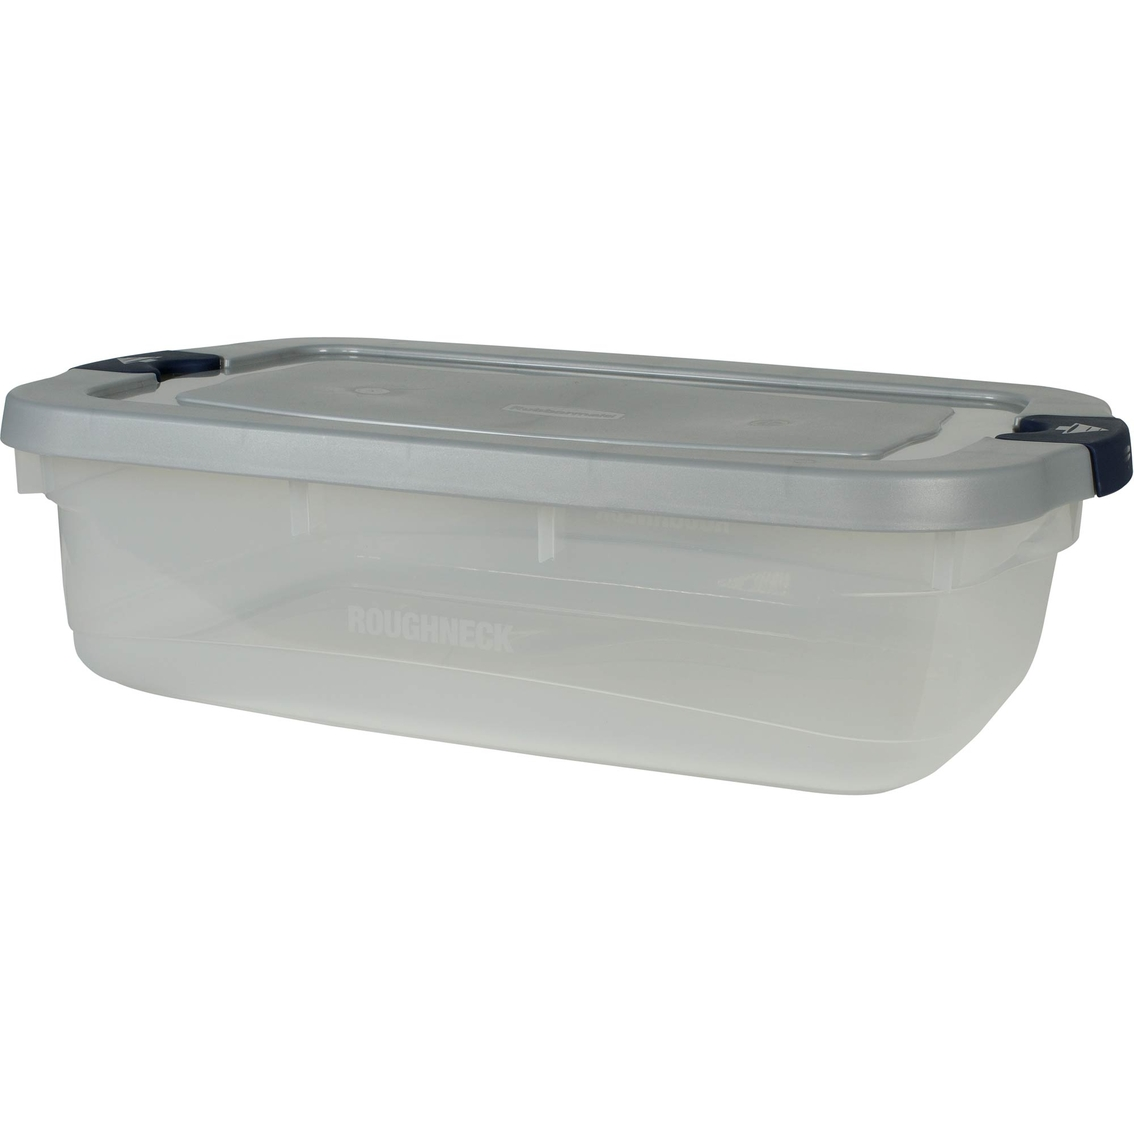 Wondrous Rubbermaid Roughneck Clear 31 Qt Latching Storage Box Caraccident5 Cool Chair Designs And Ideas Caraccident5Info